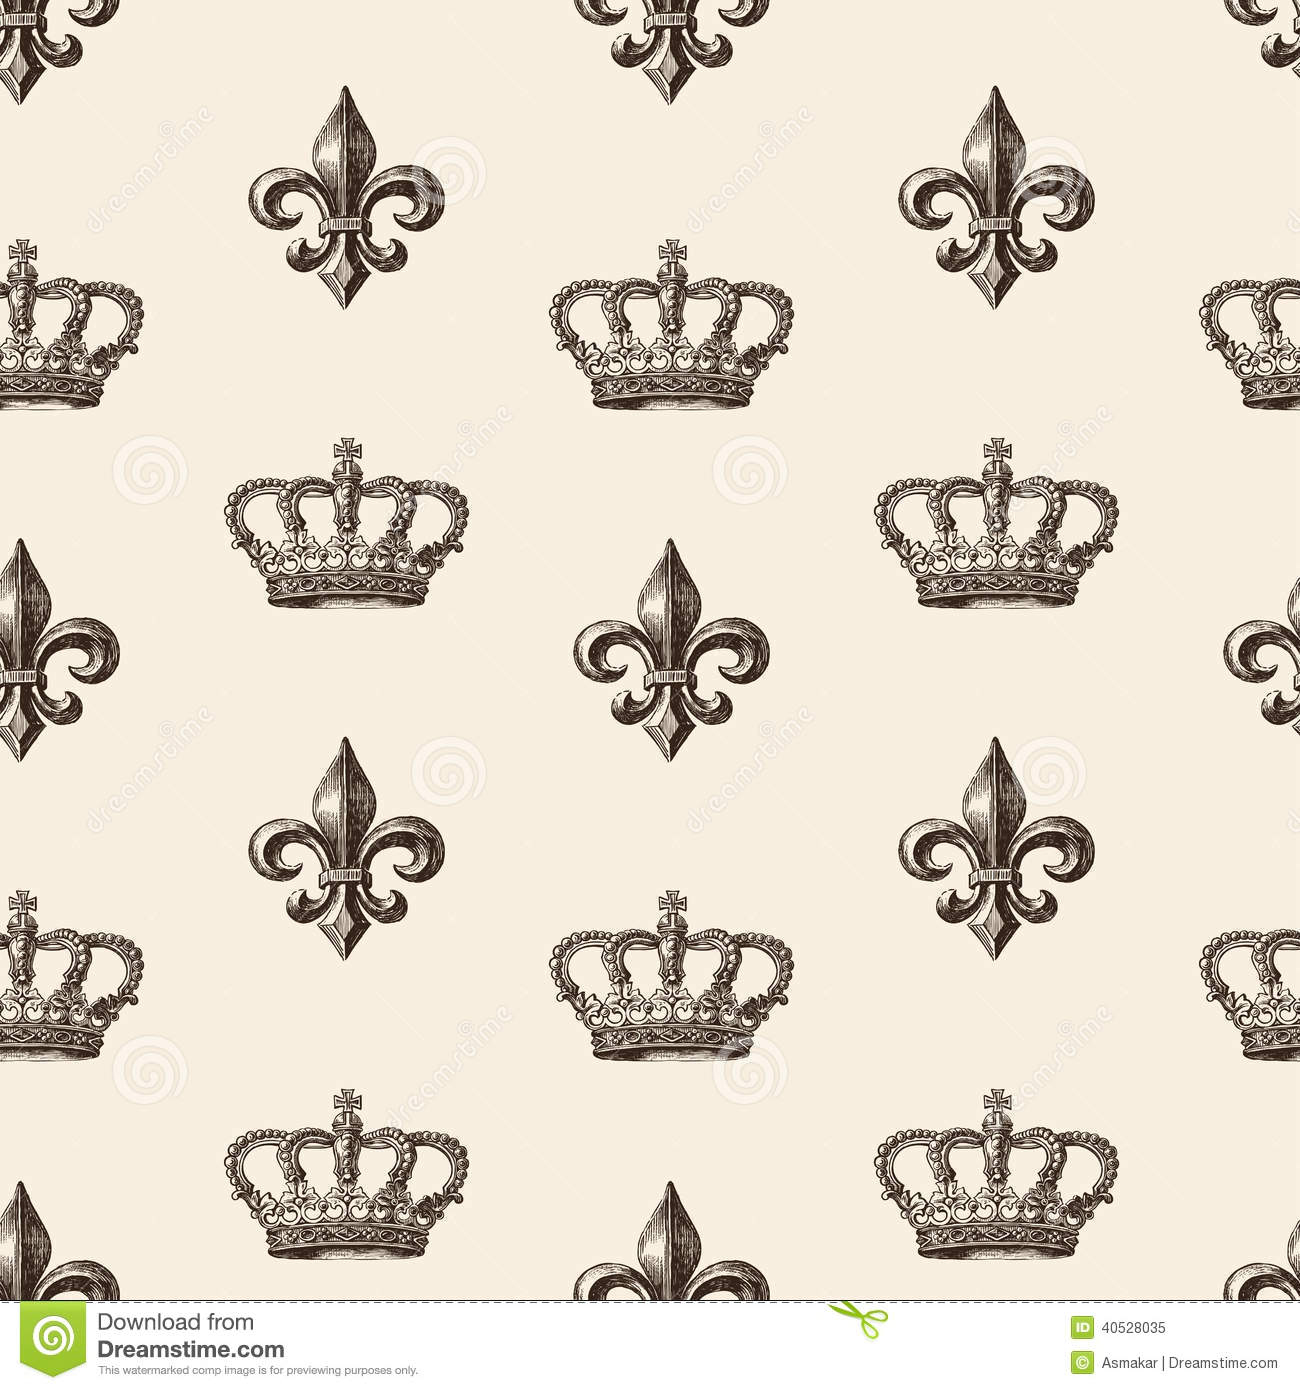 Pattern Of The Crown And French Lily Stock Vector - Image: 40528035